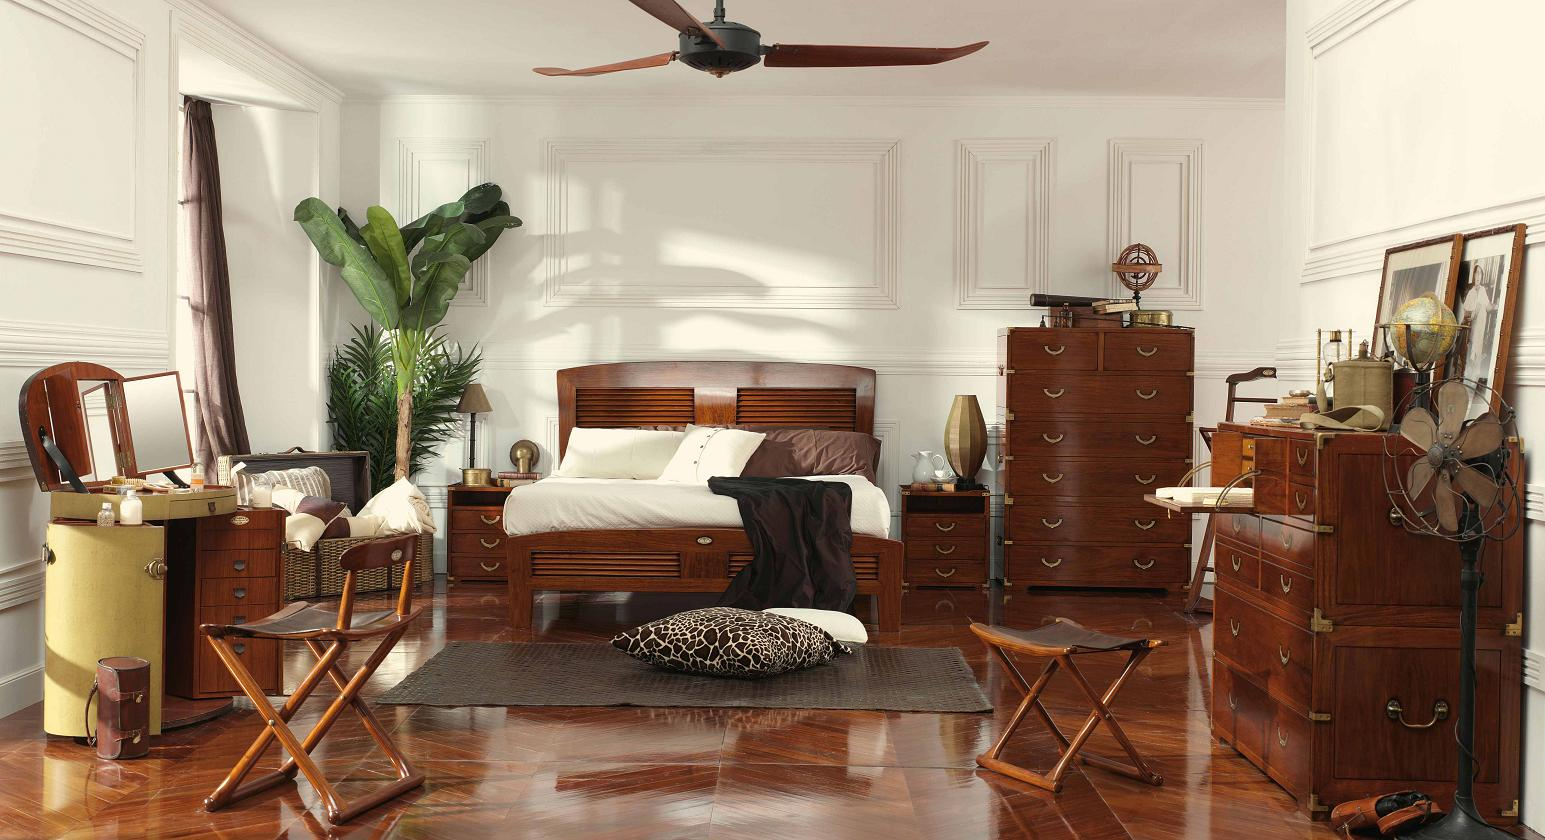 le d cor colonial un style part et hors du temps echo web. Black Bedroom Furniture Sets. Home Design Ideas